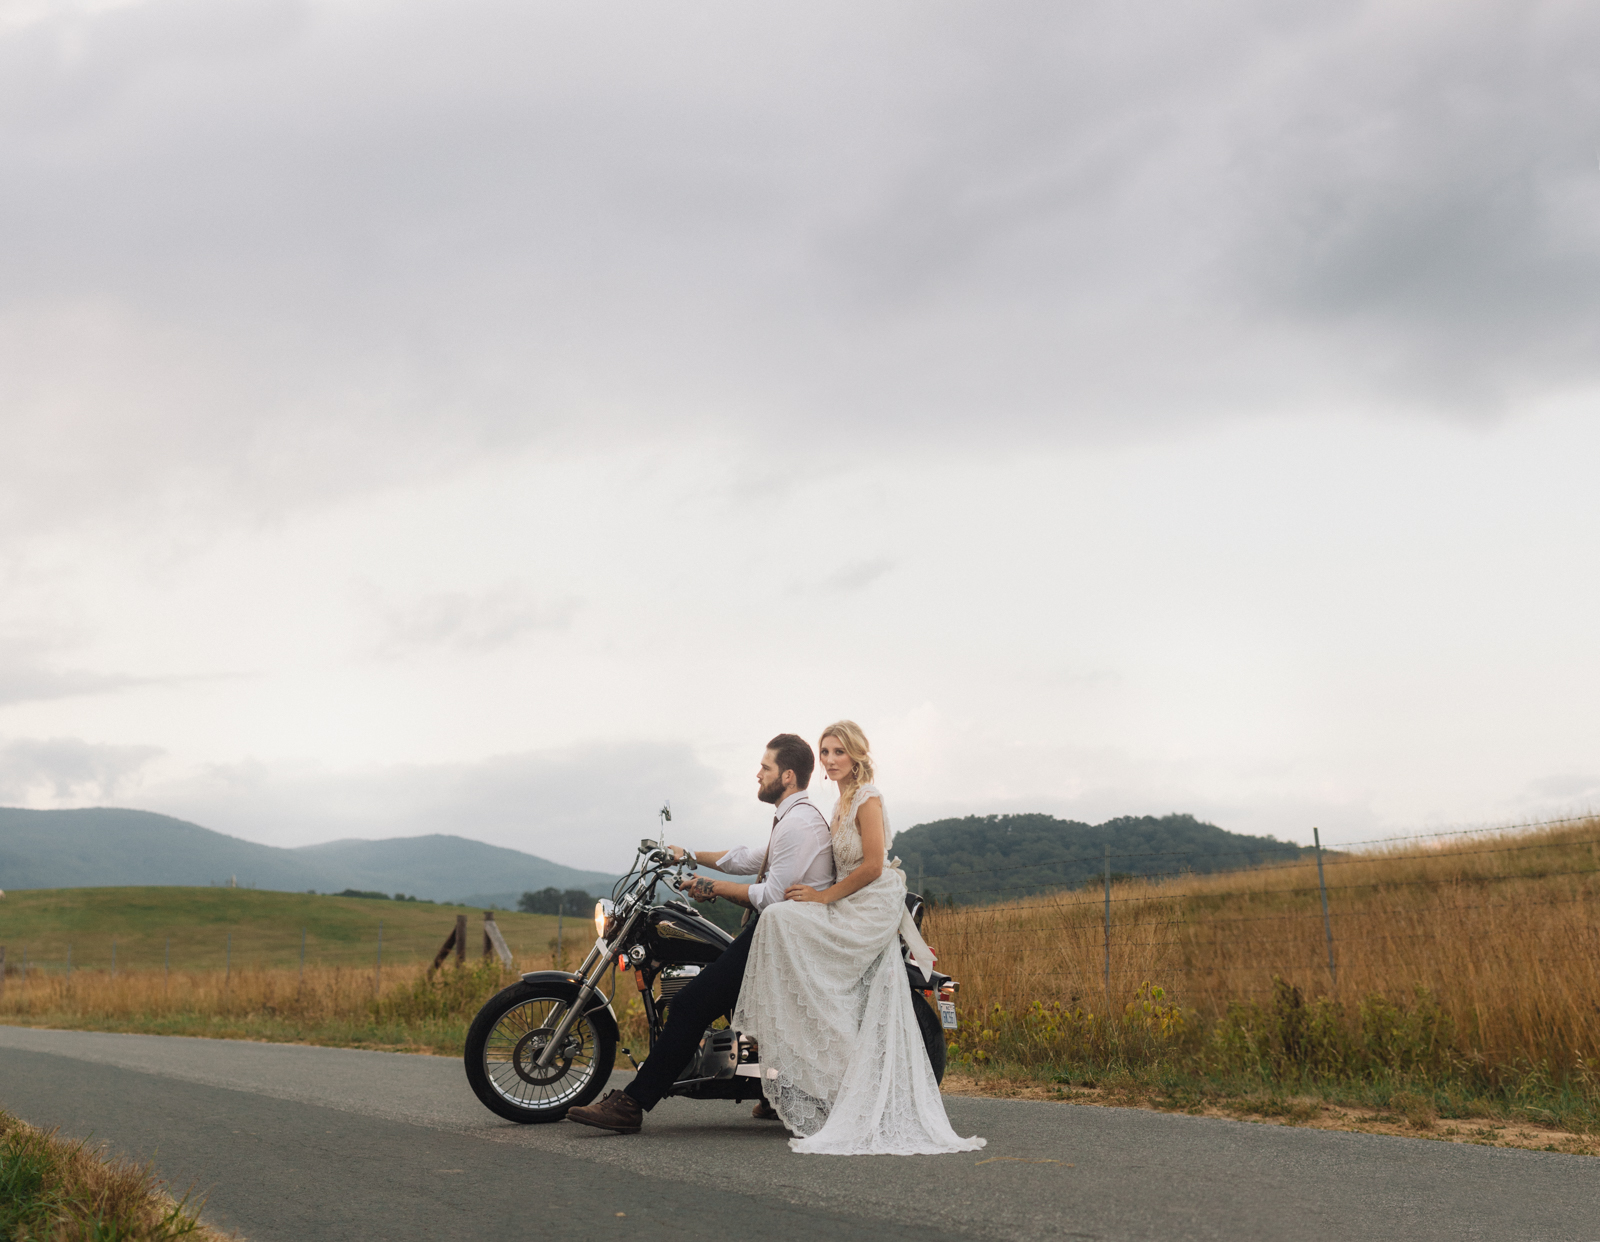 Couple on a motorcycle in the mountains of North Carolina on their wedding day.